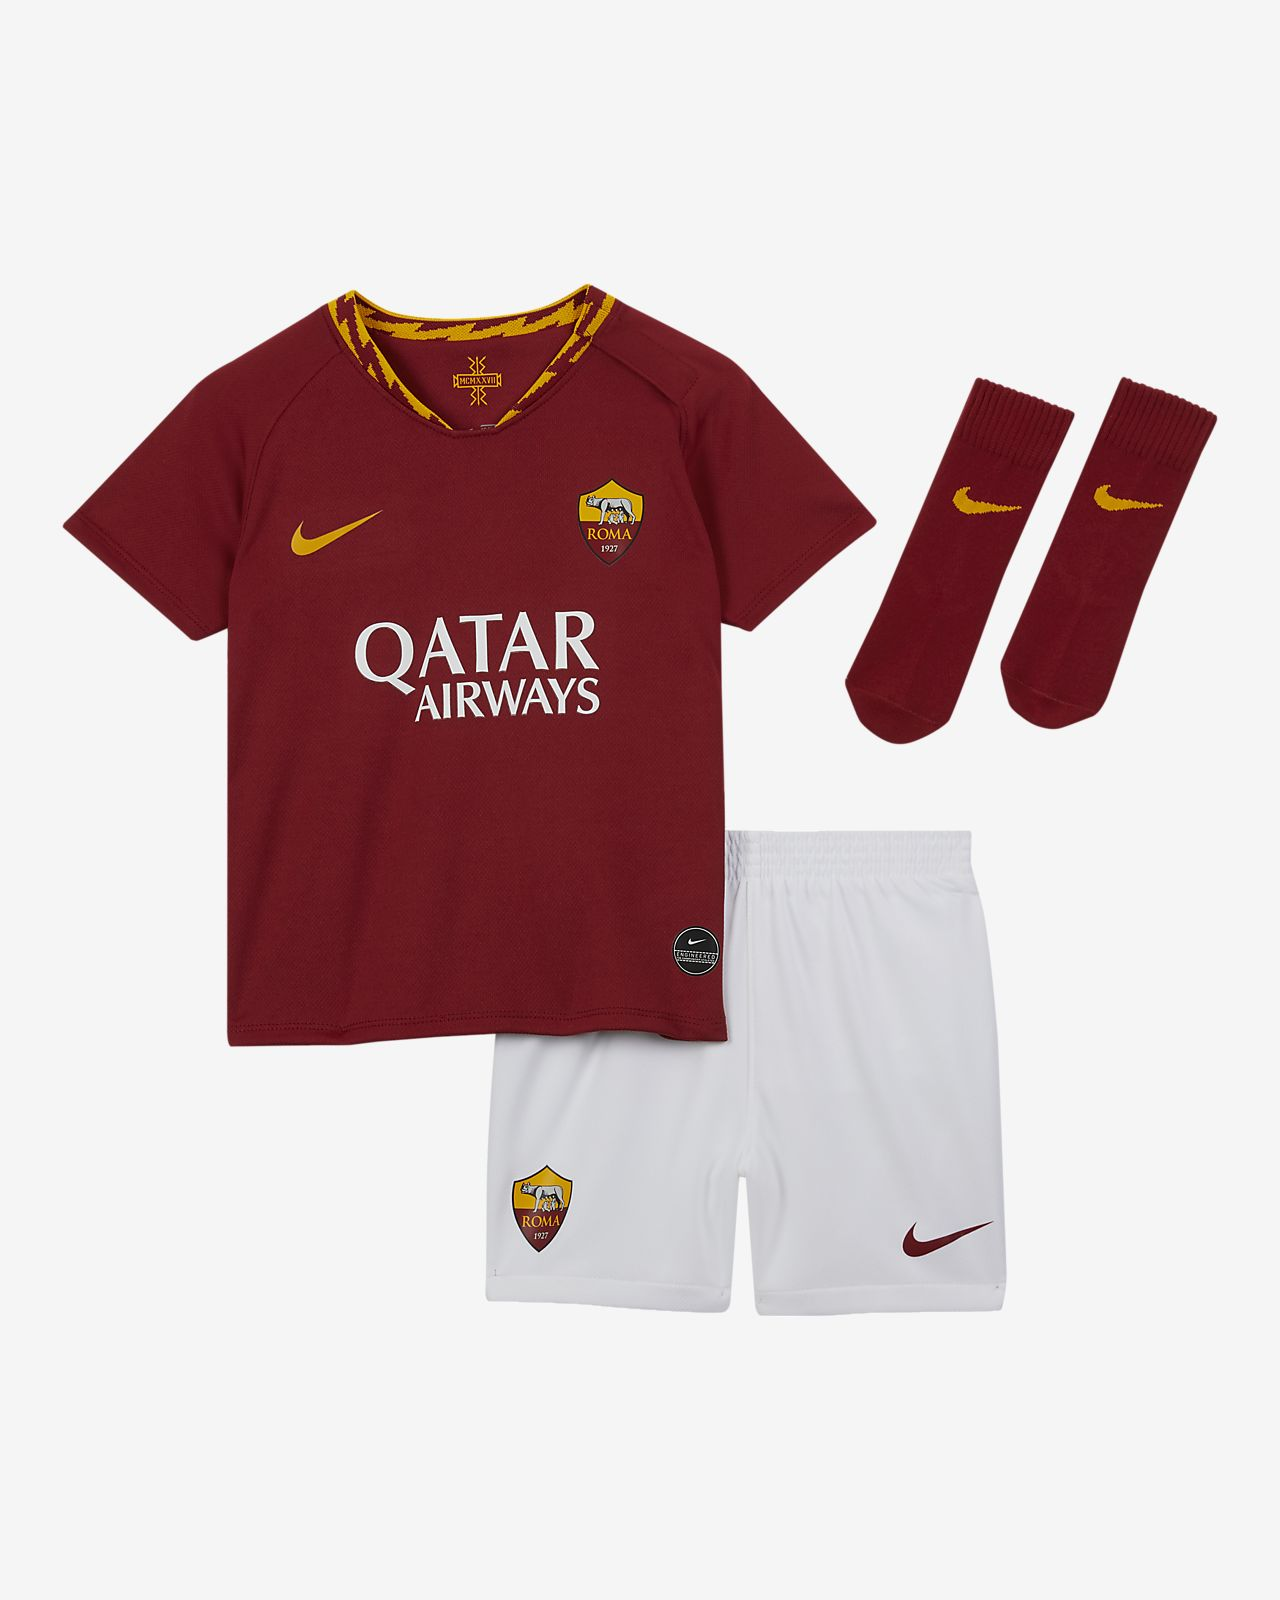 A.S. Roma 2019/20 Home Voetbaltenue voor baby's/peuters